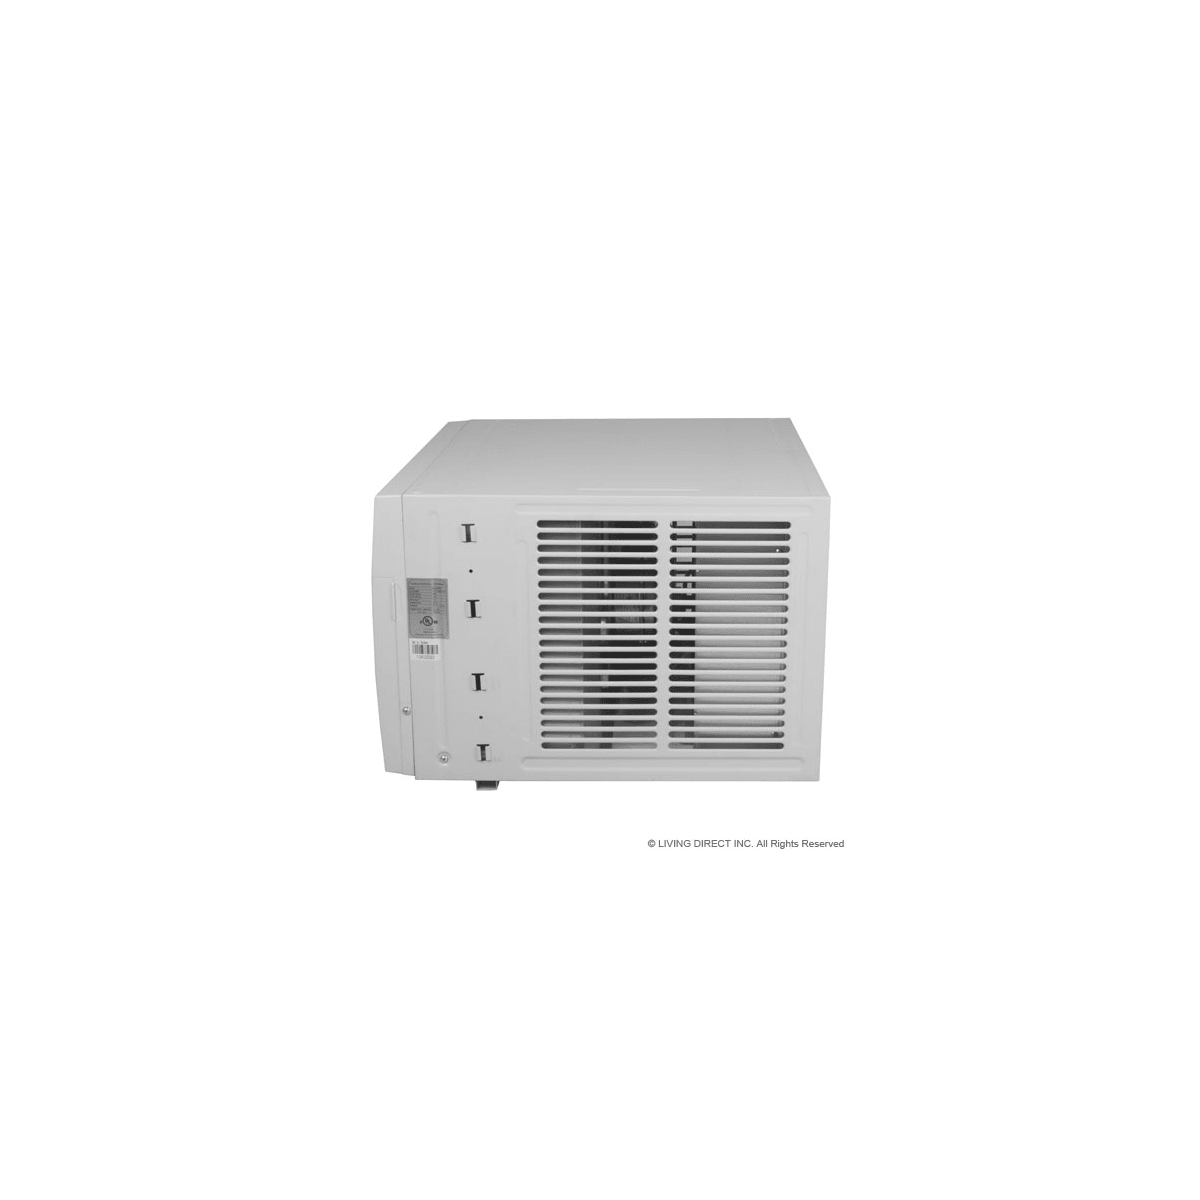 Incroyable Koldfront 8,000 BTU Heat / Cool Window Air Conditioner With Remote    WAC8001WOB